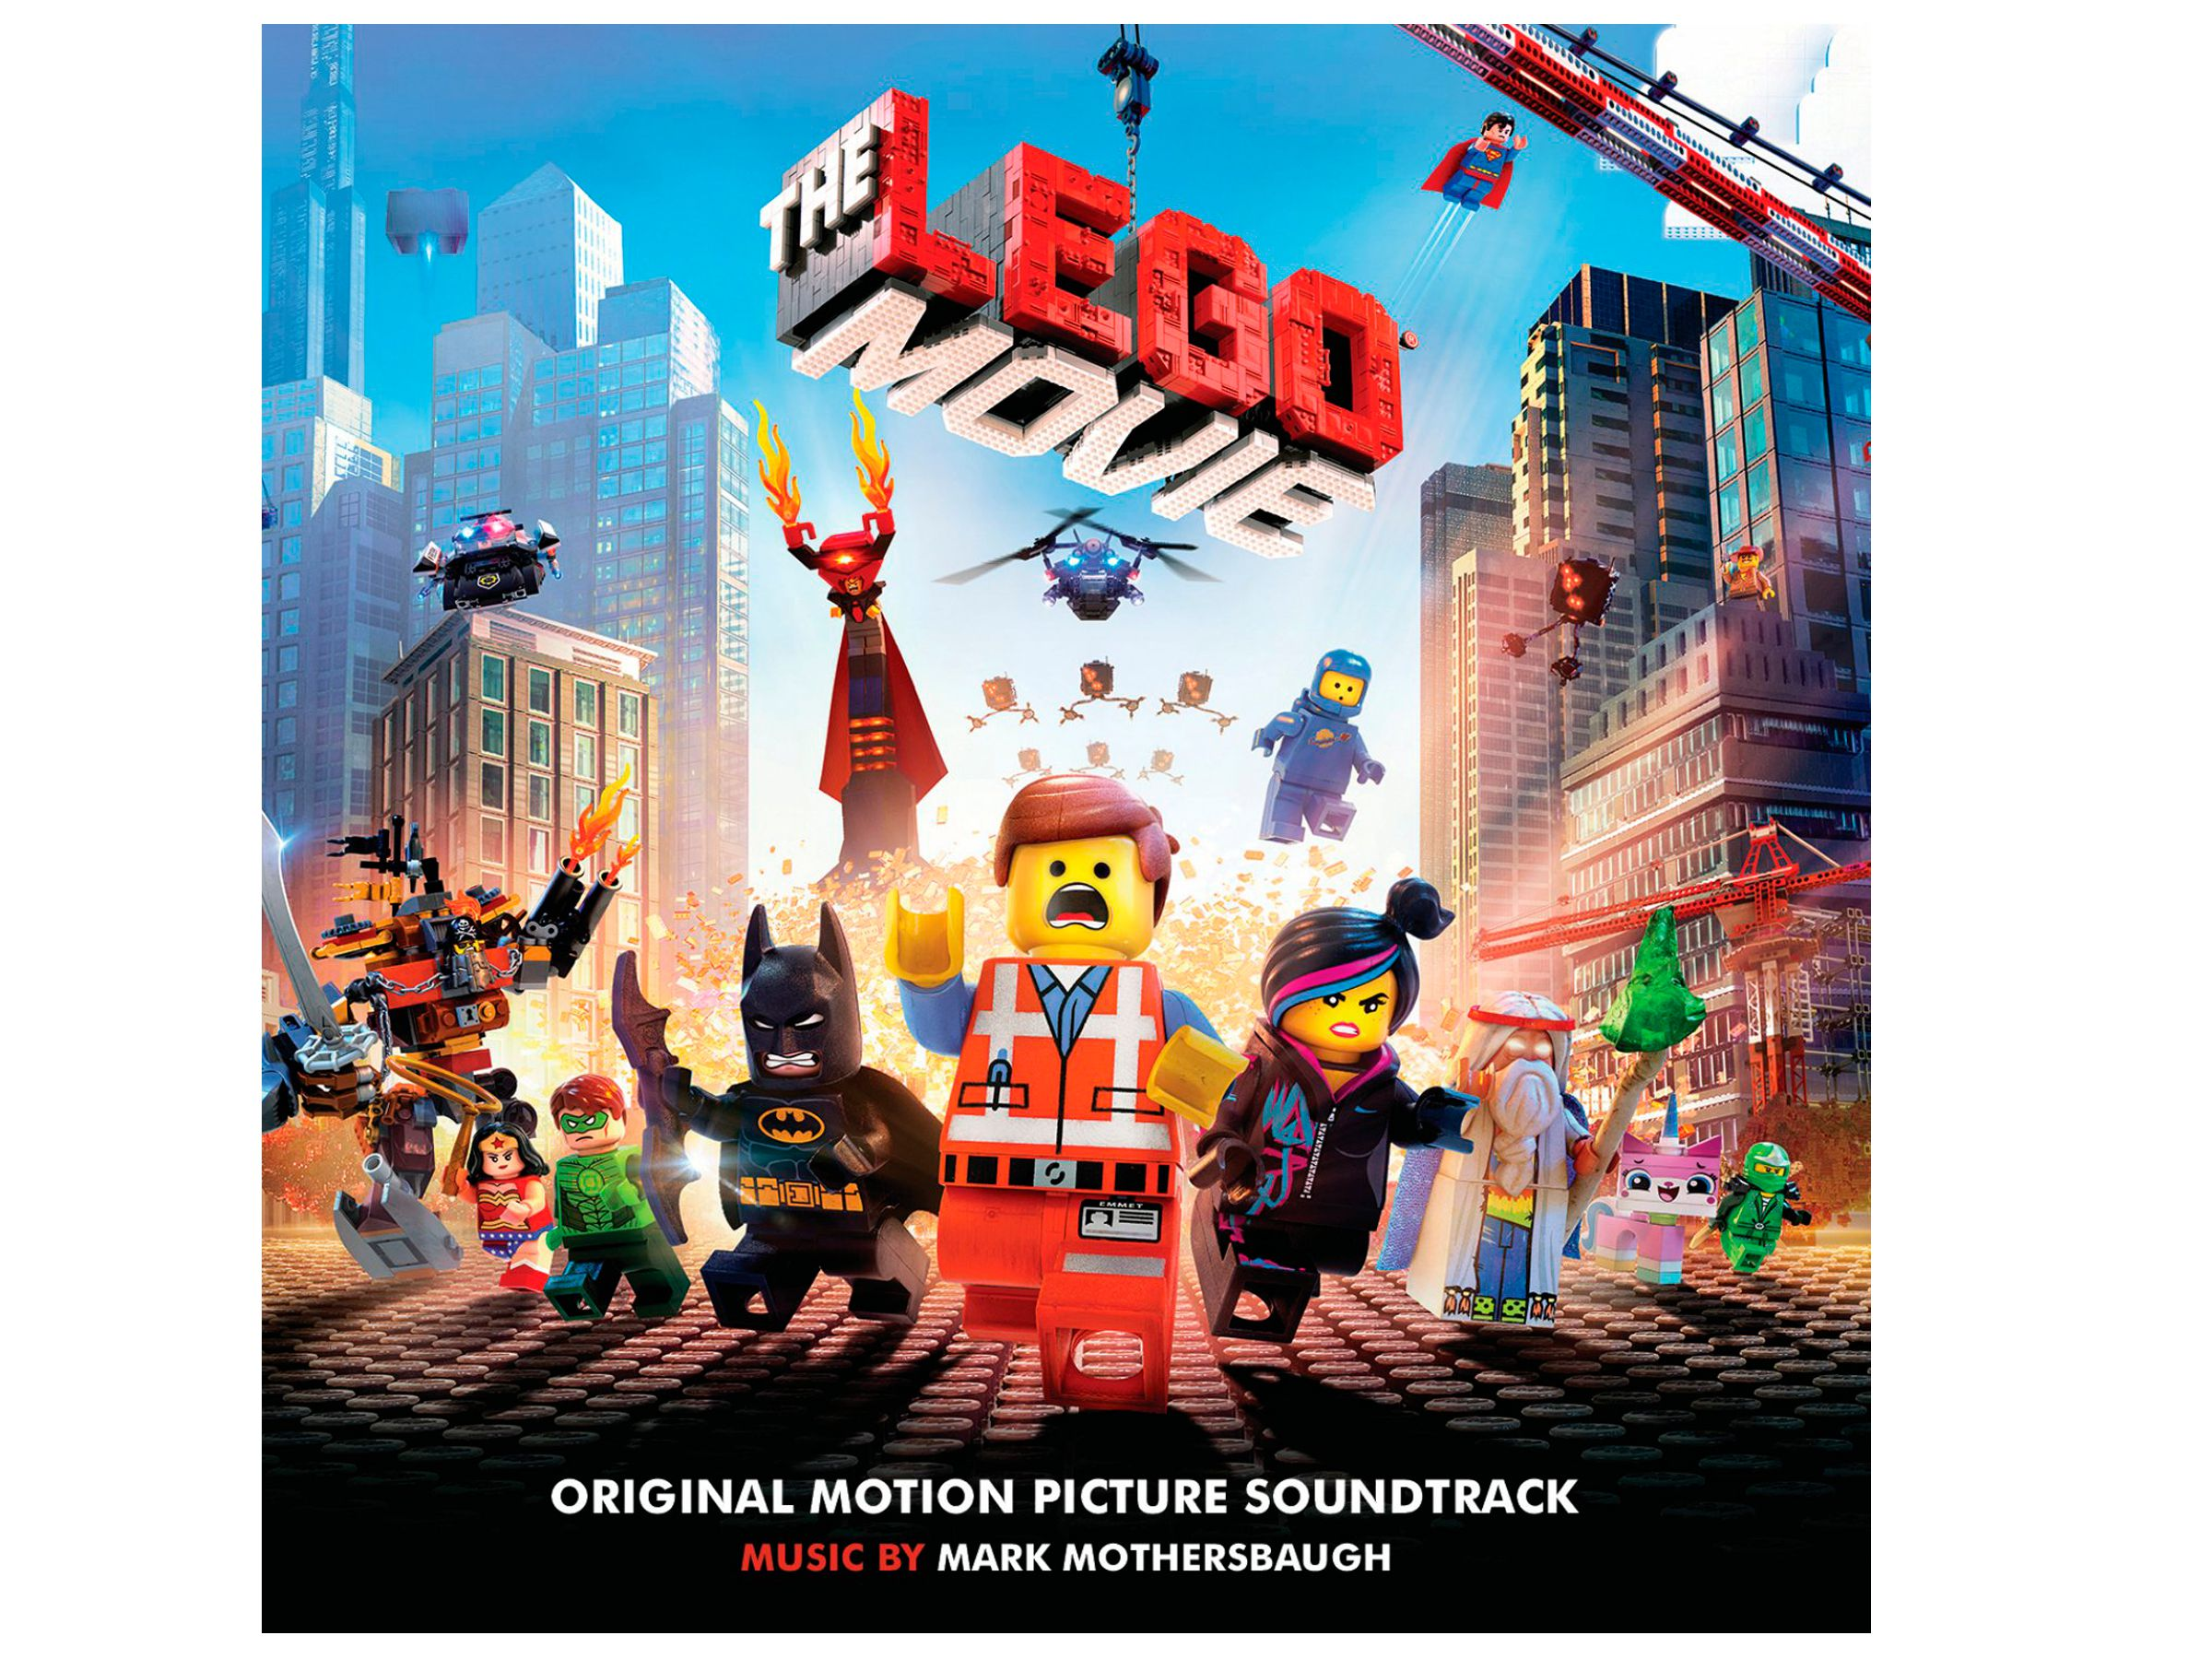 LEGO Film 5004066 The LEGO Movie Soundtrack LEGO_5004066.jpg